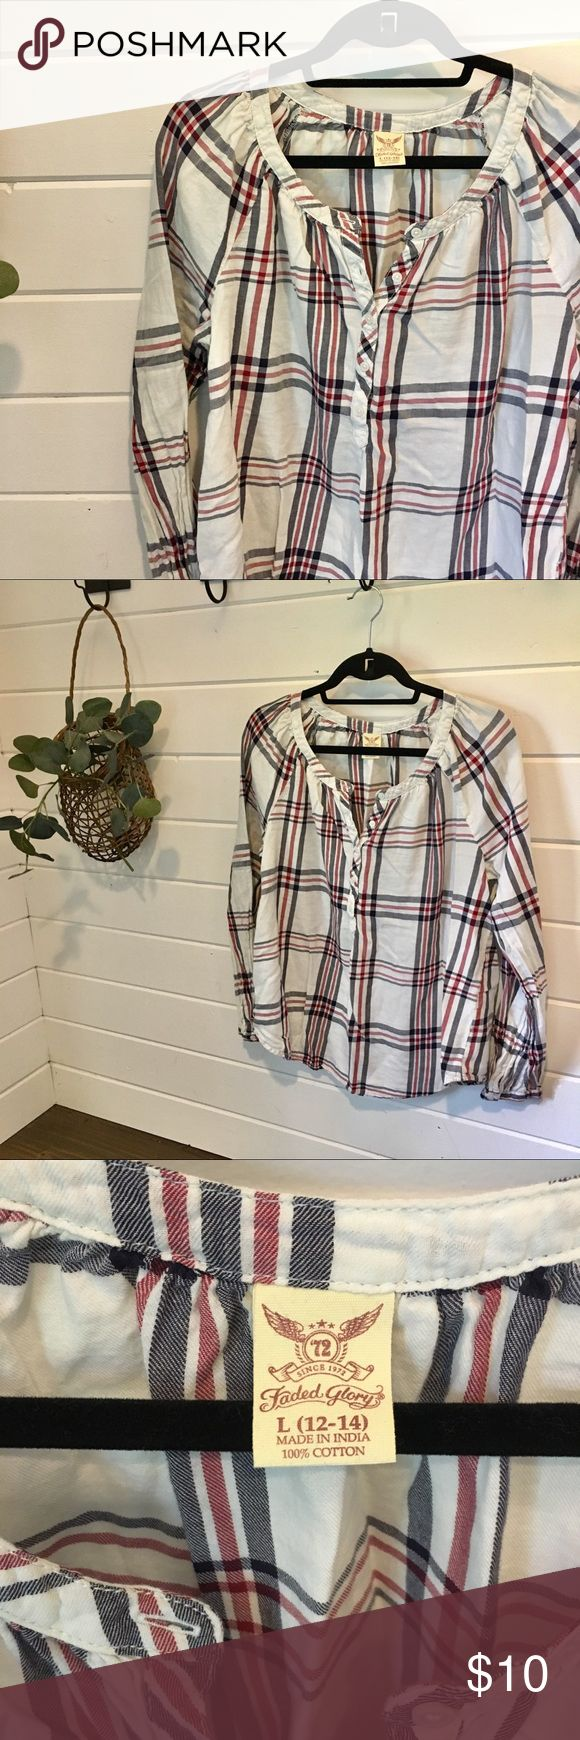 Red and White Plaid Top Only worn once! Perfect for Independence Day get togethe…